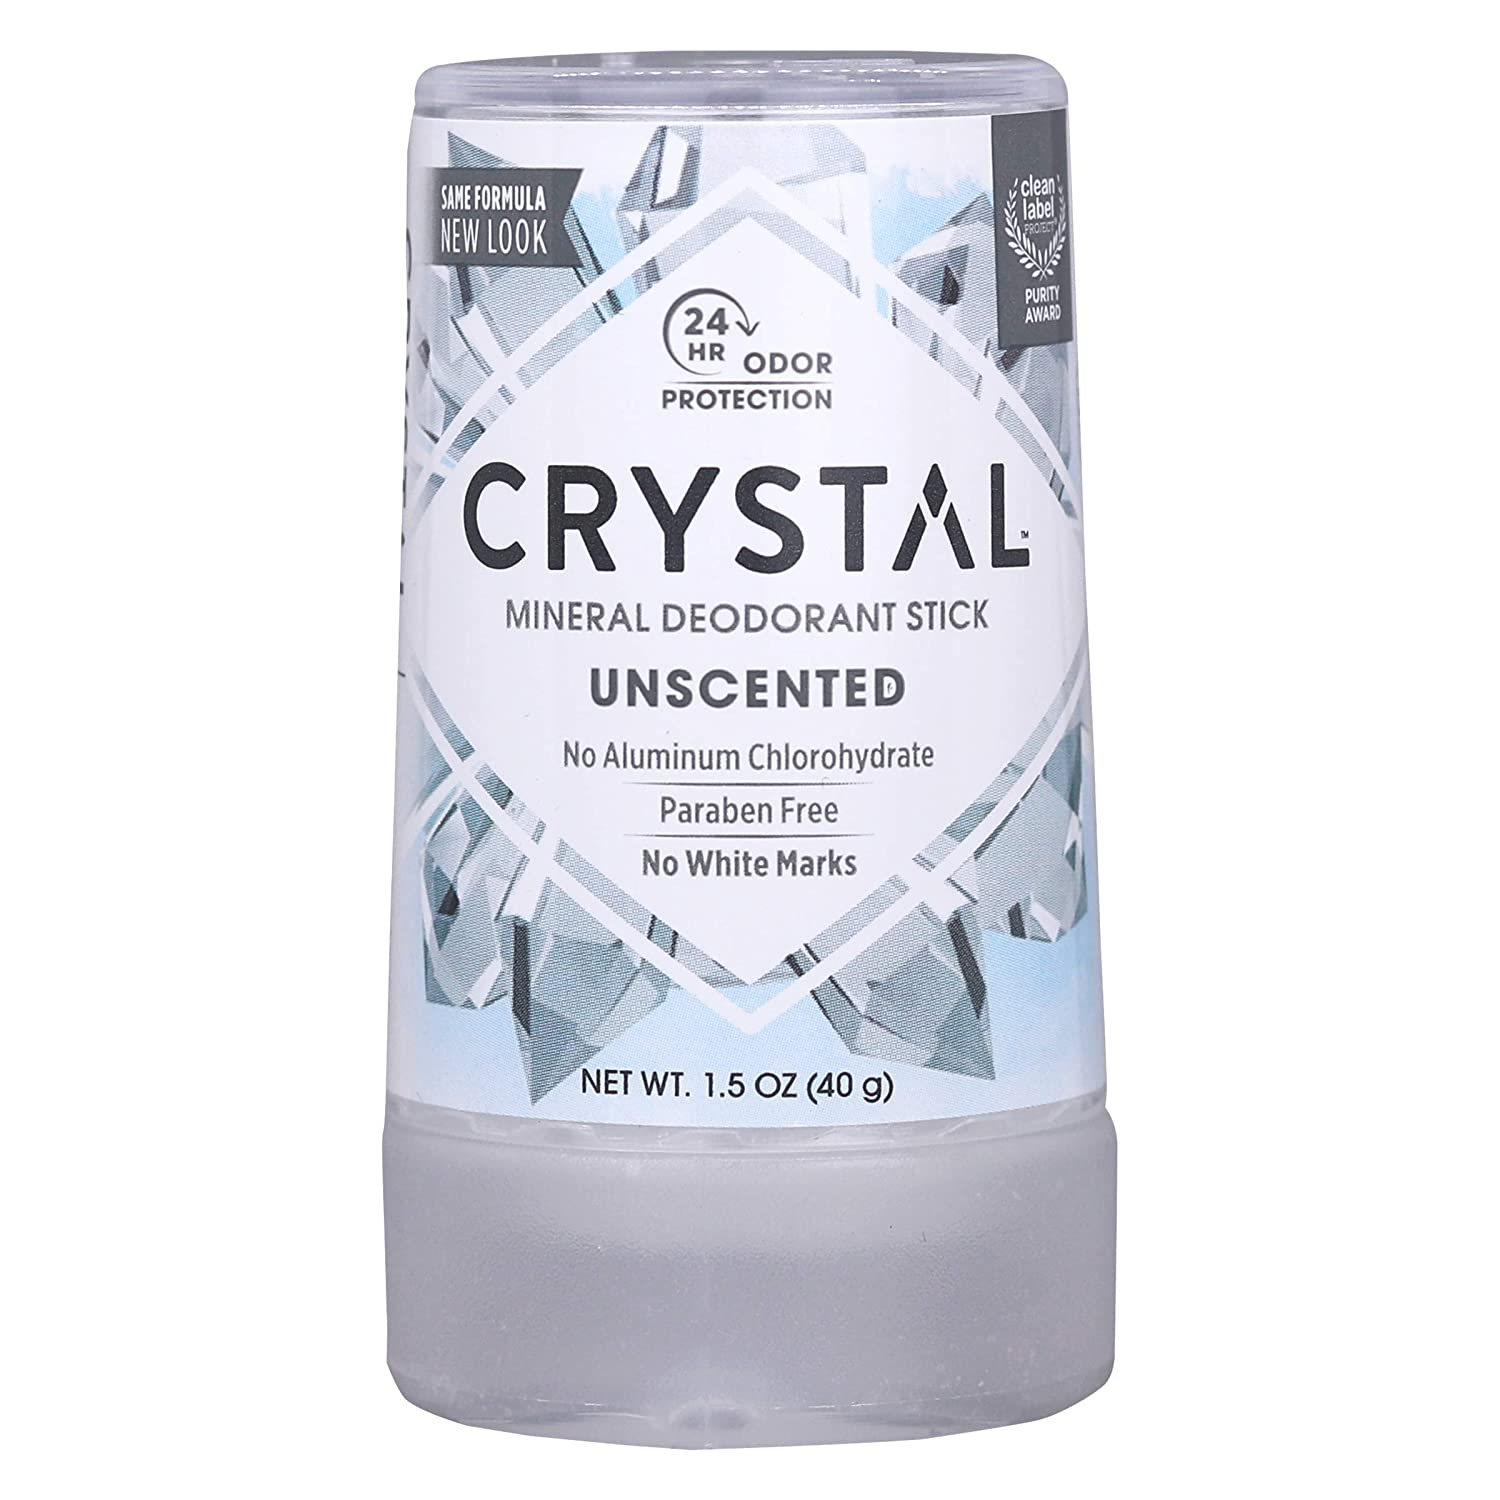 CRYSTAL Deodorant Max 82% OFF Mineral Stick Ranking TOP20 Travel Ounce 1.5